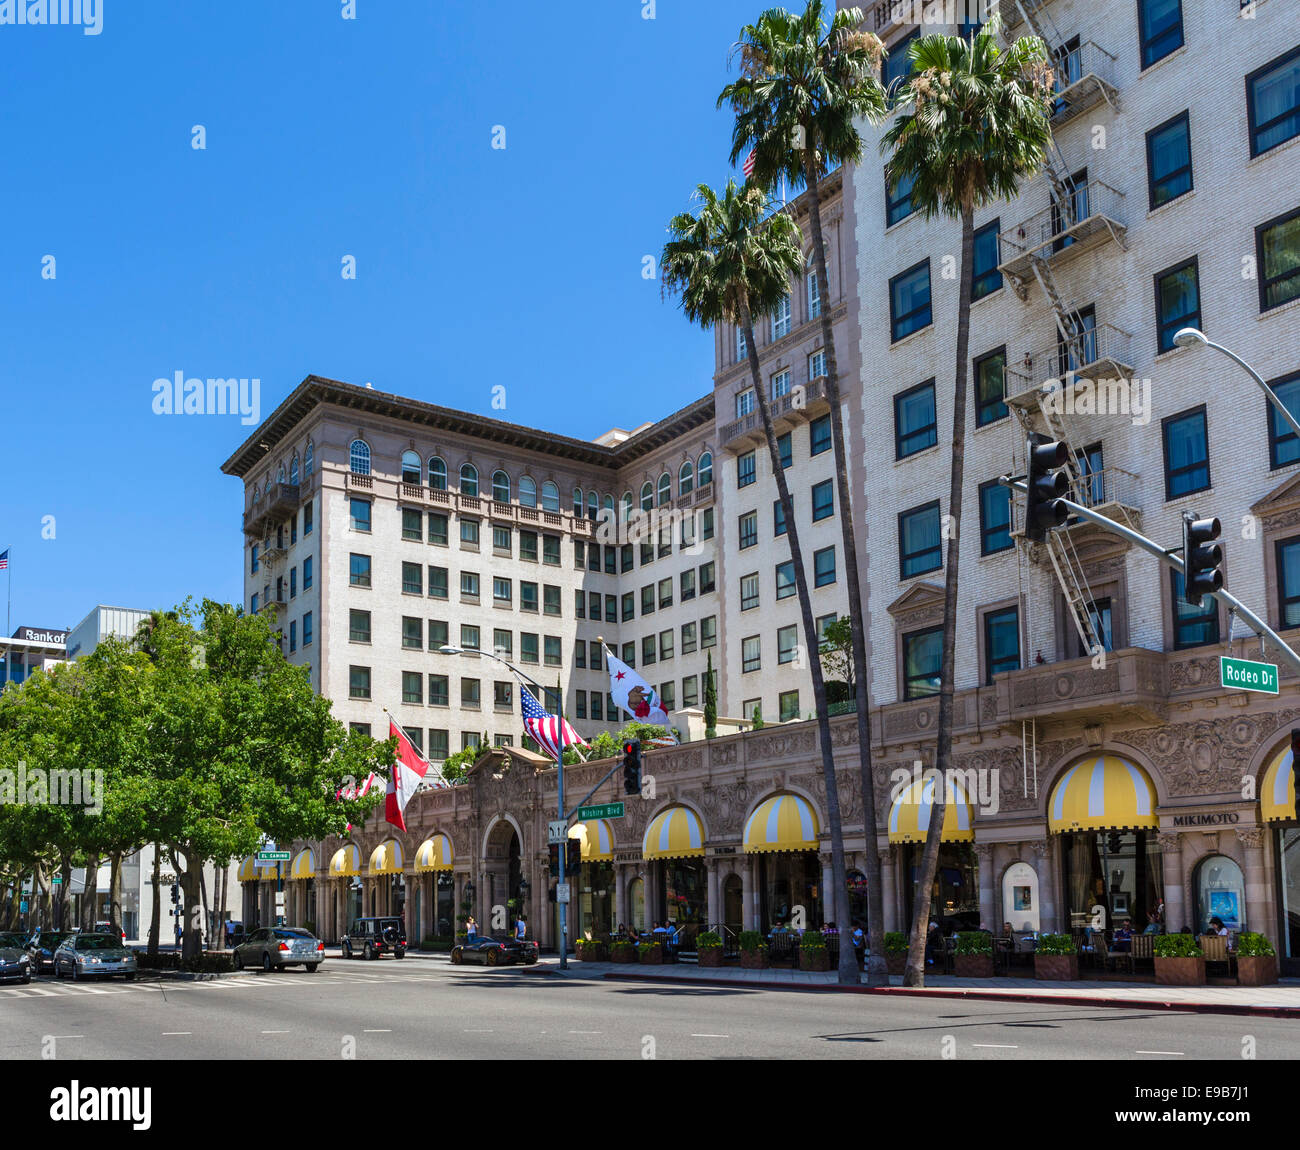 The Beverly Wilshire Hotel on Wilshire Boulevard, Beverly Hills, Los Angeles, California, USA - Stock Image